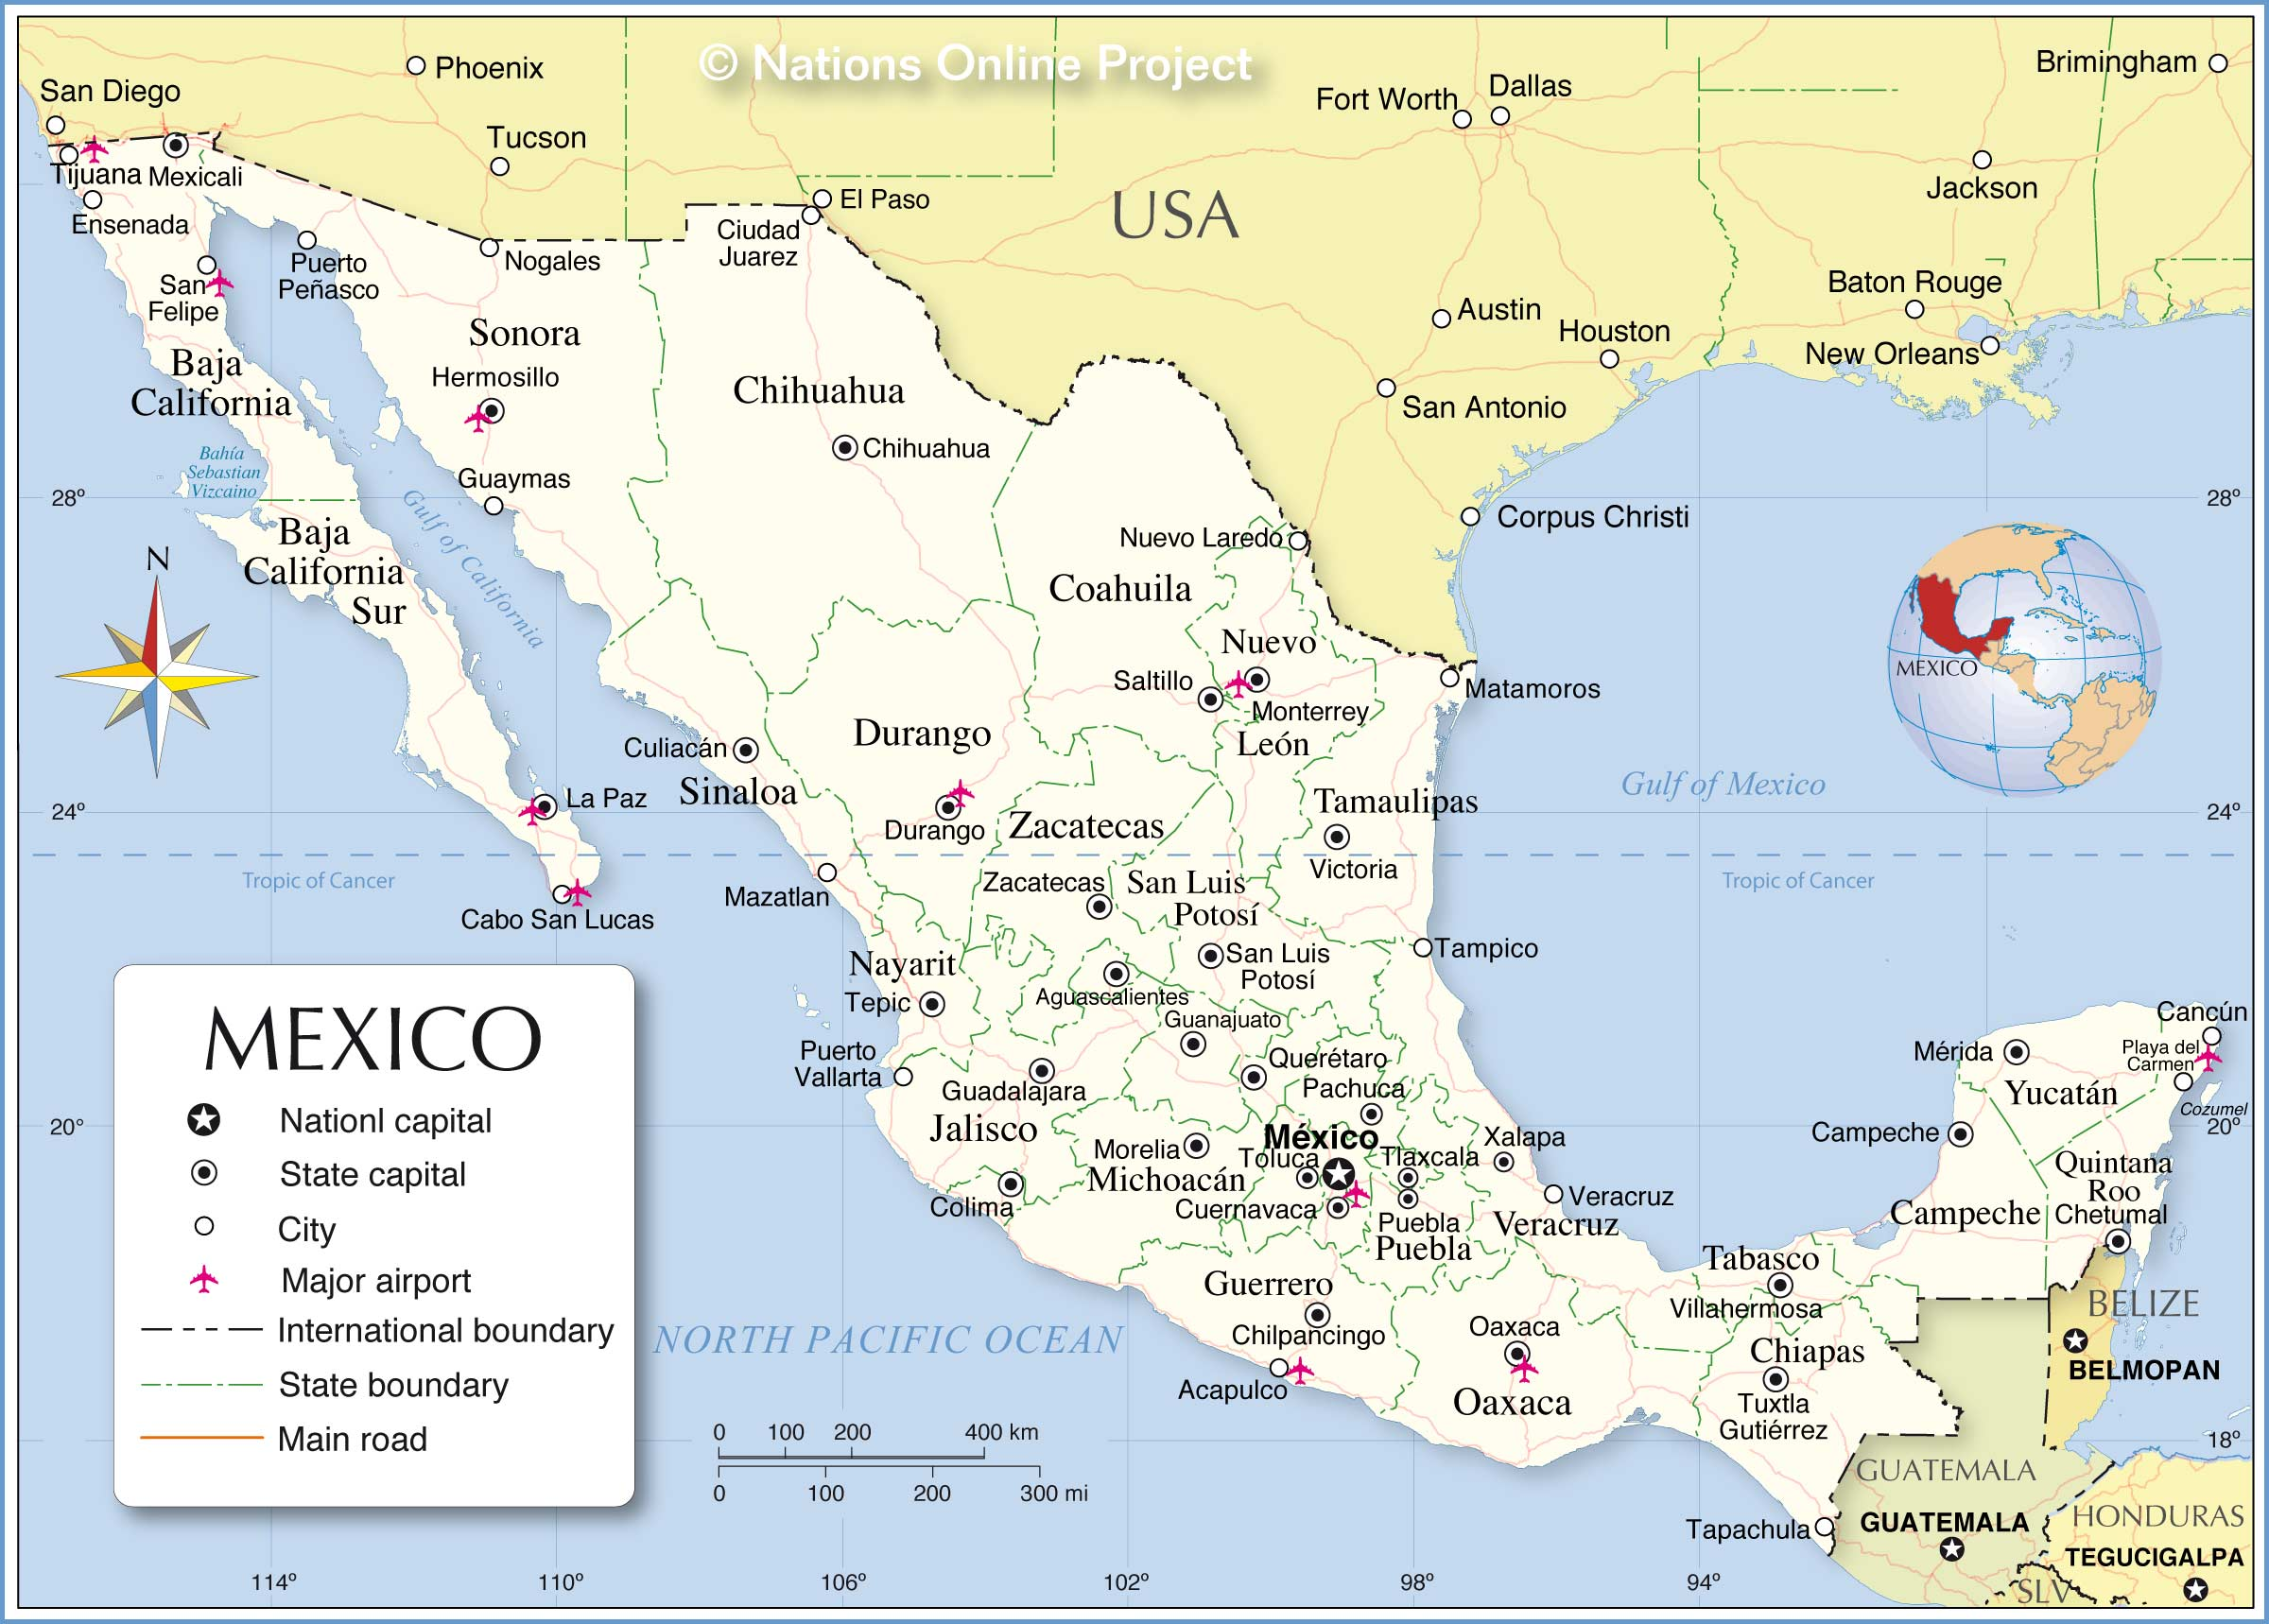 Administrative Map of Mexico - Nations Online Project